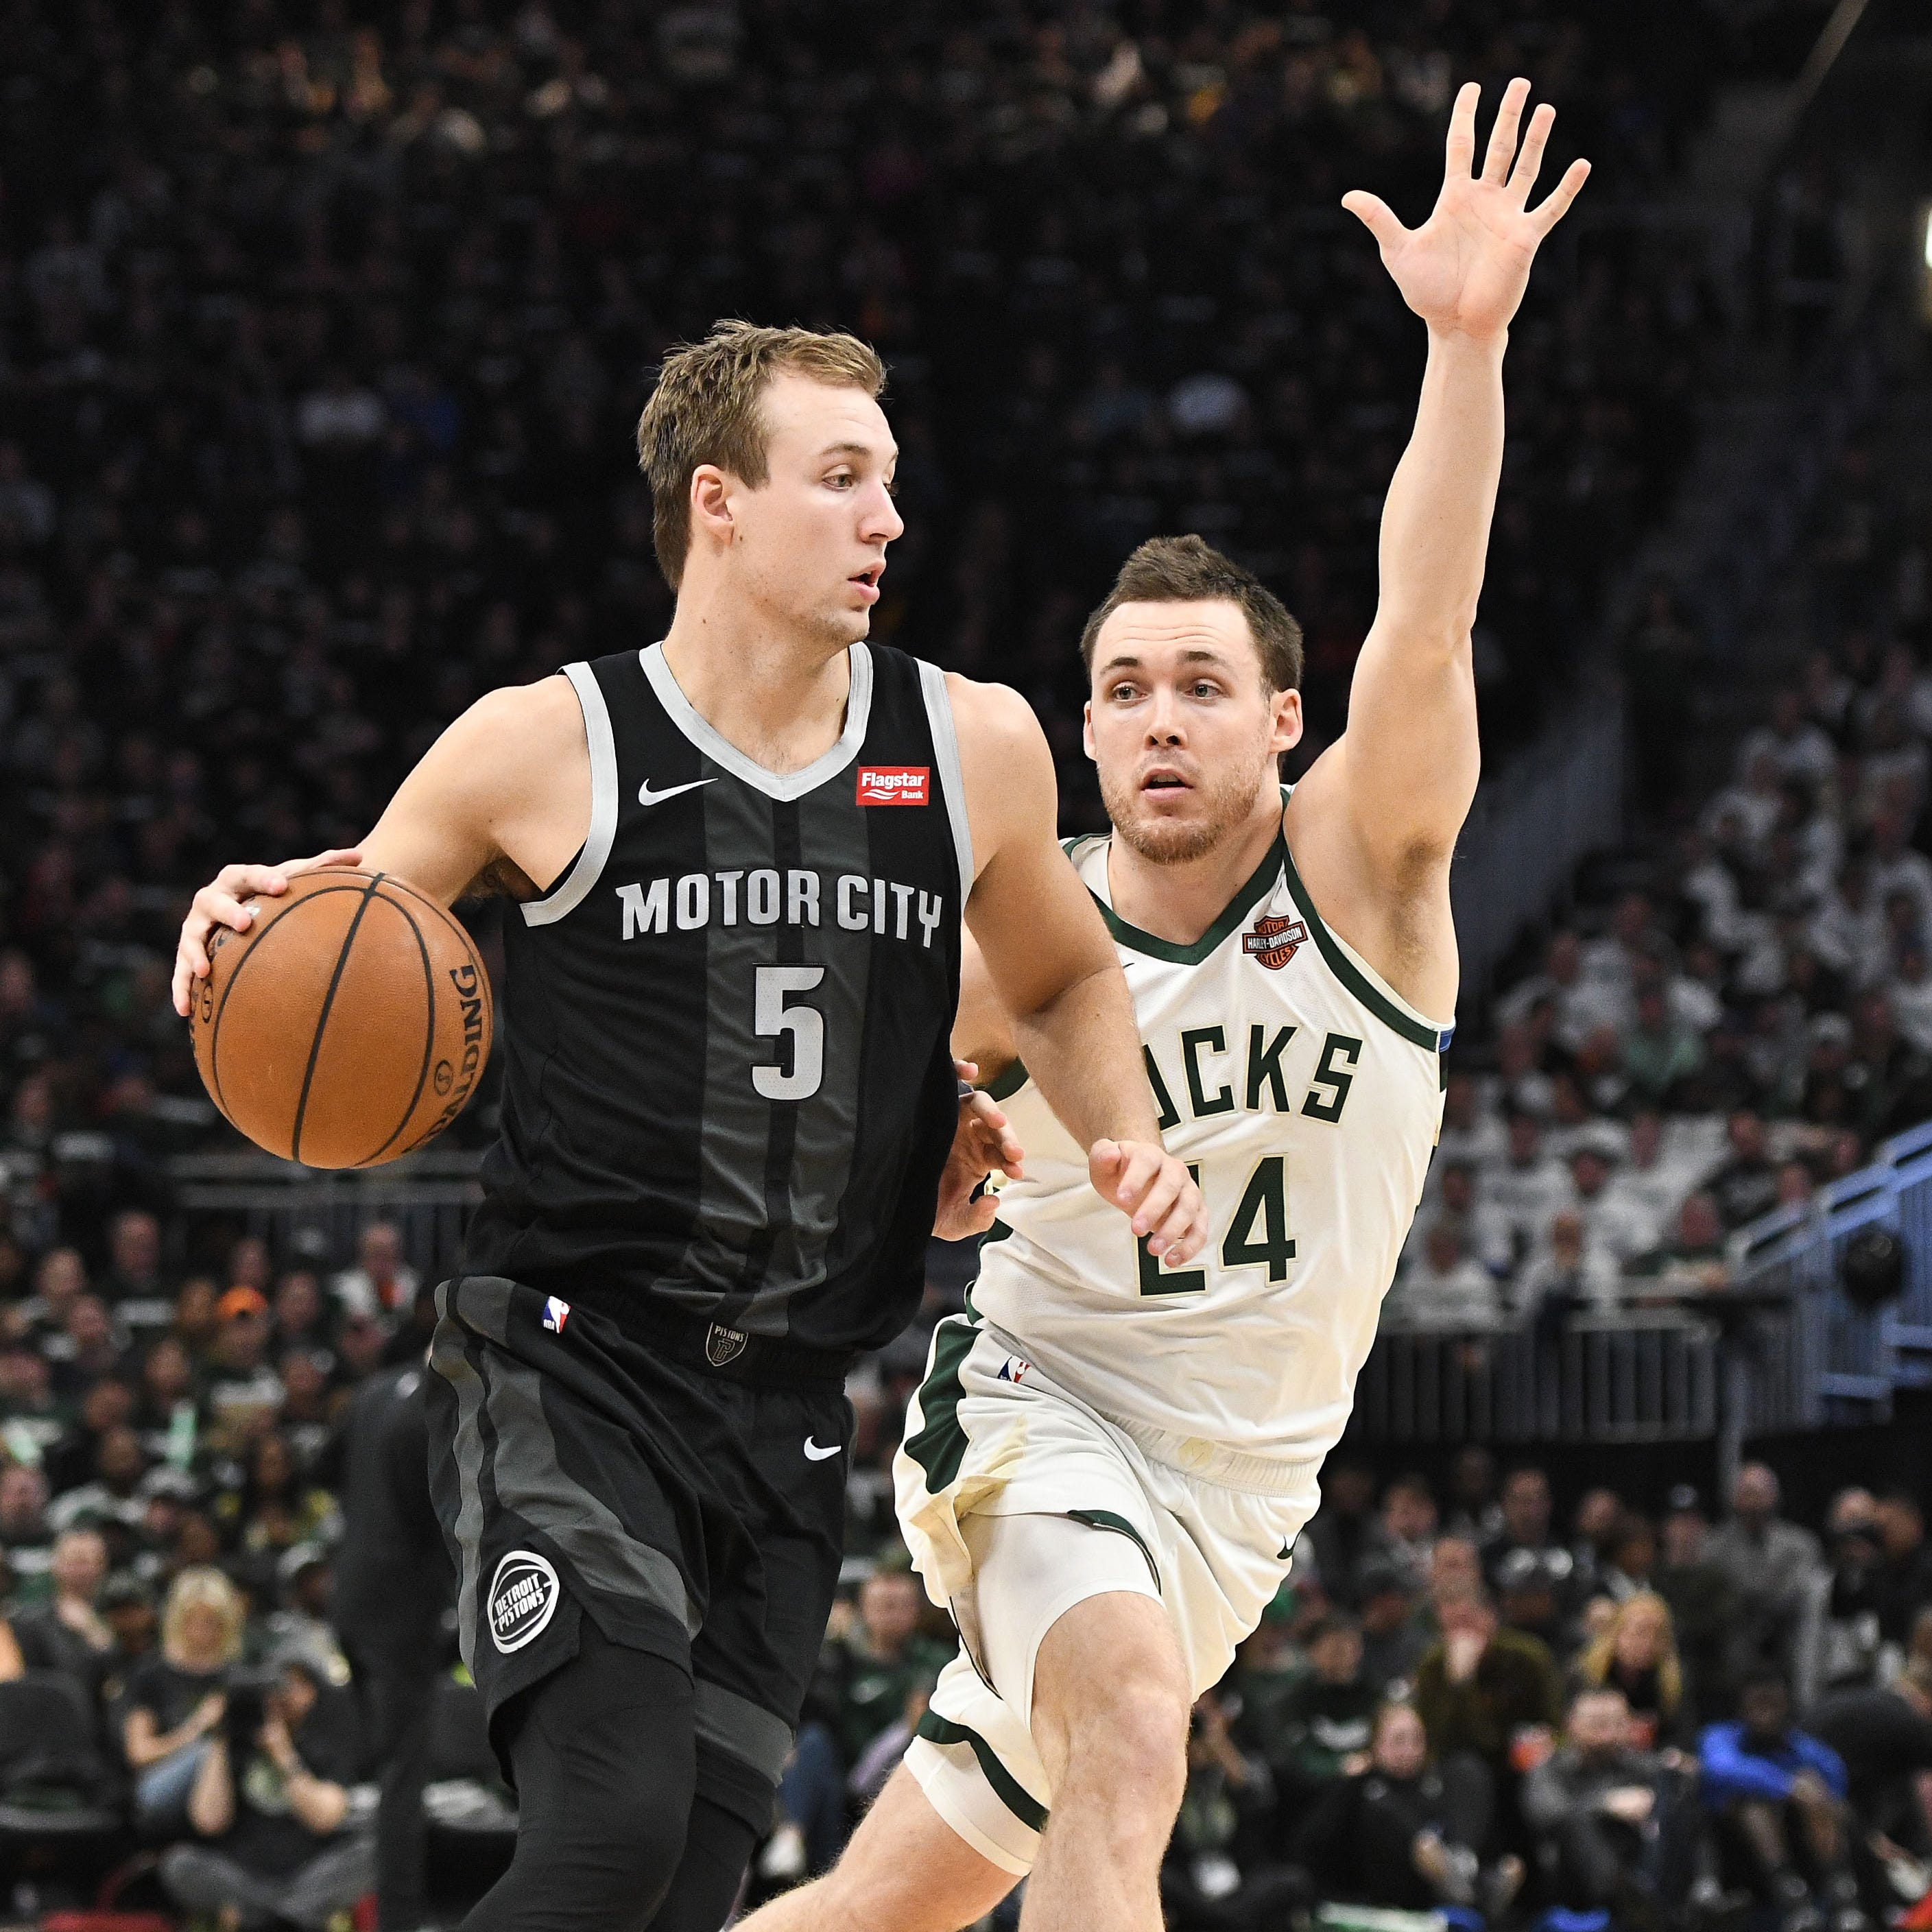 Detroit Pistons dominated by Bucks. But at least Luke Kennard didn't stink